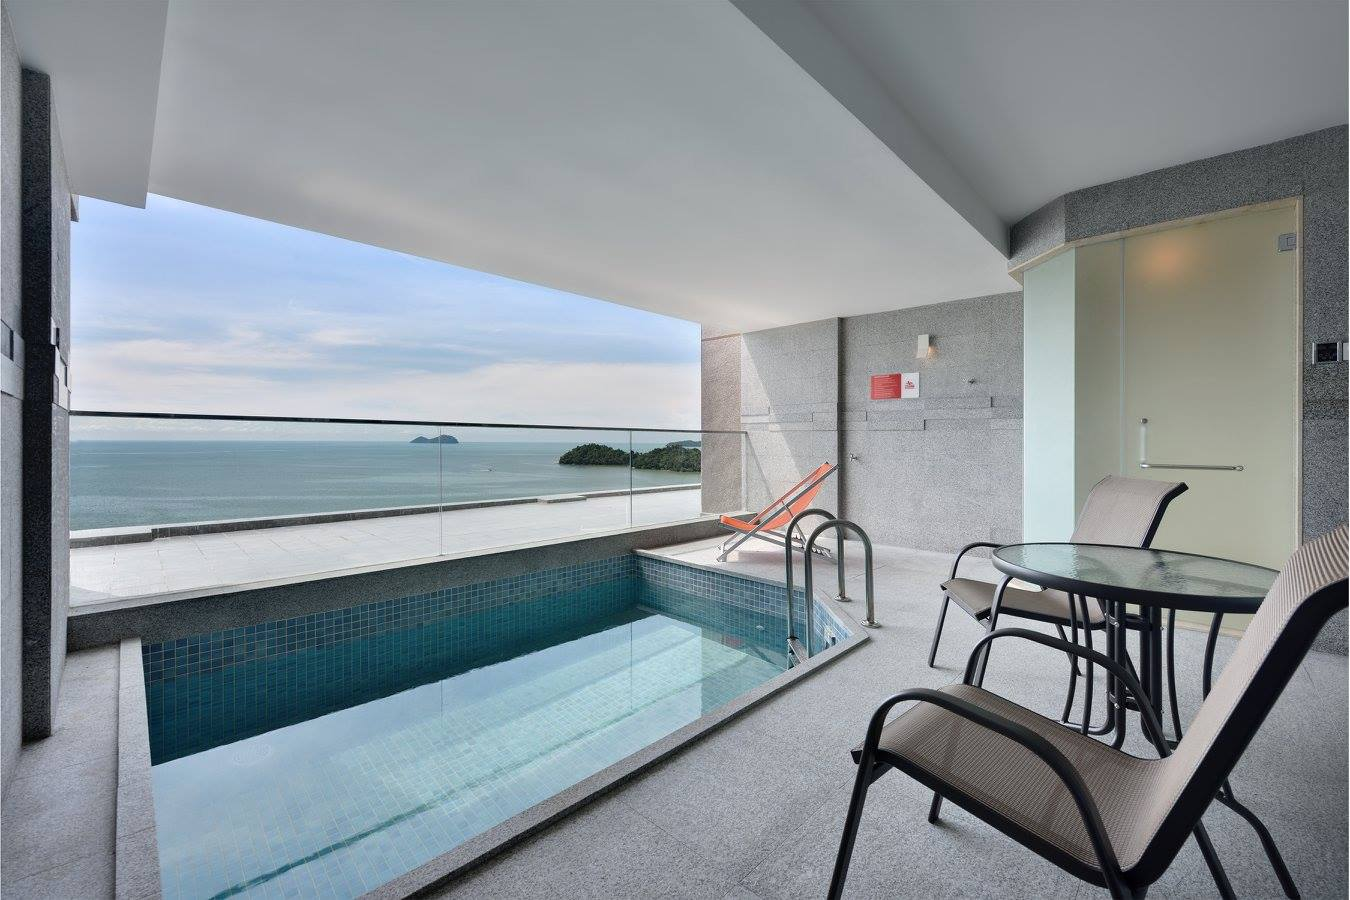 Image from Lexis Suites Penang